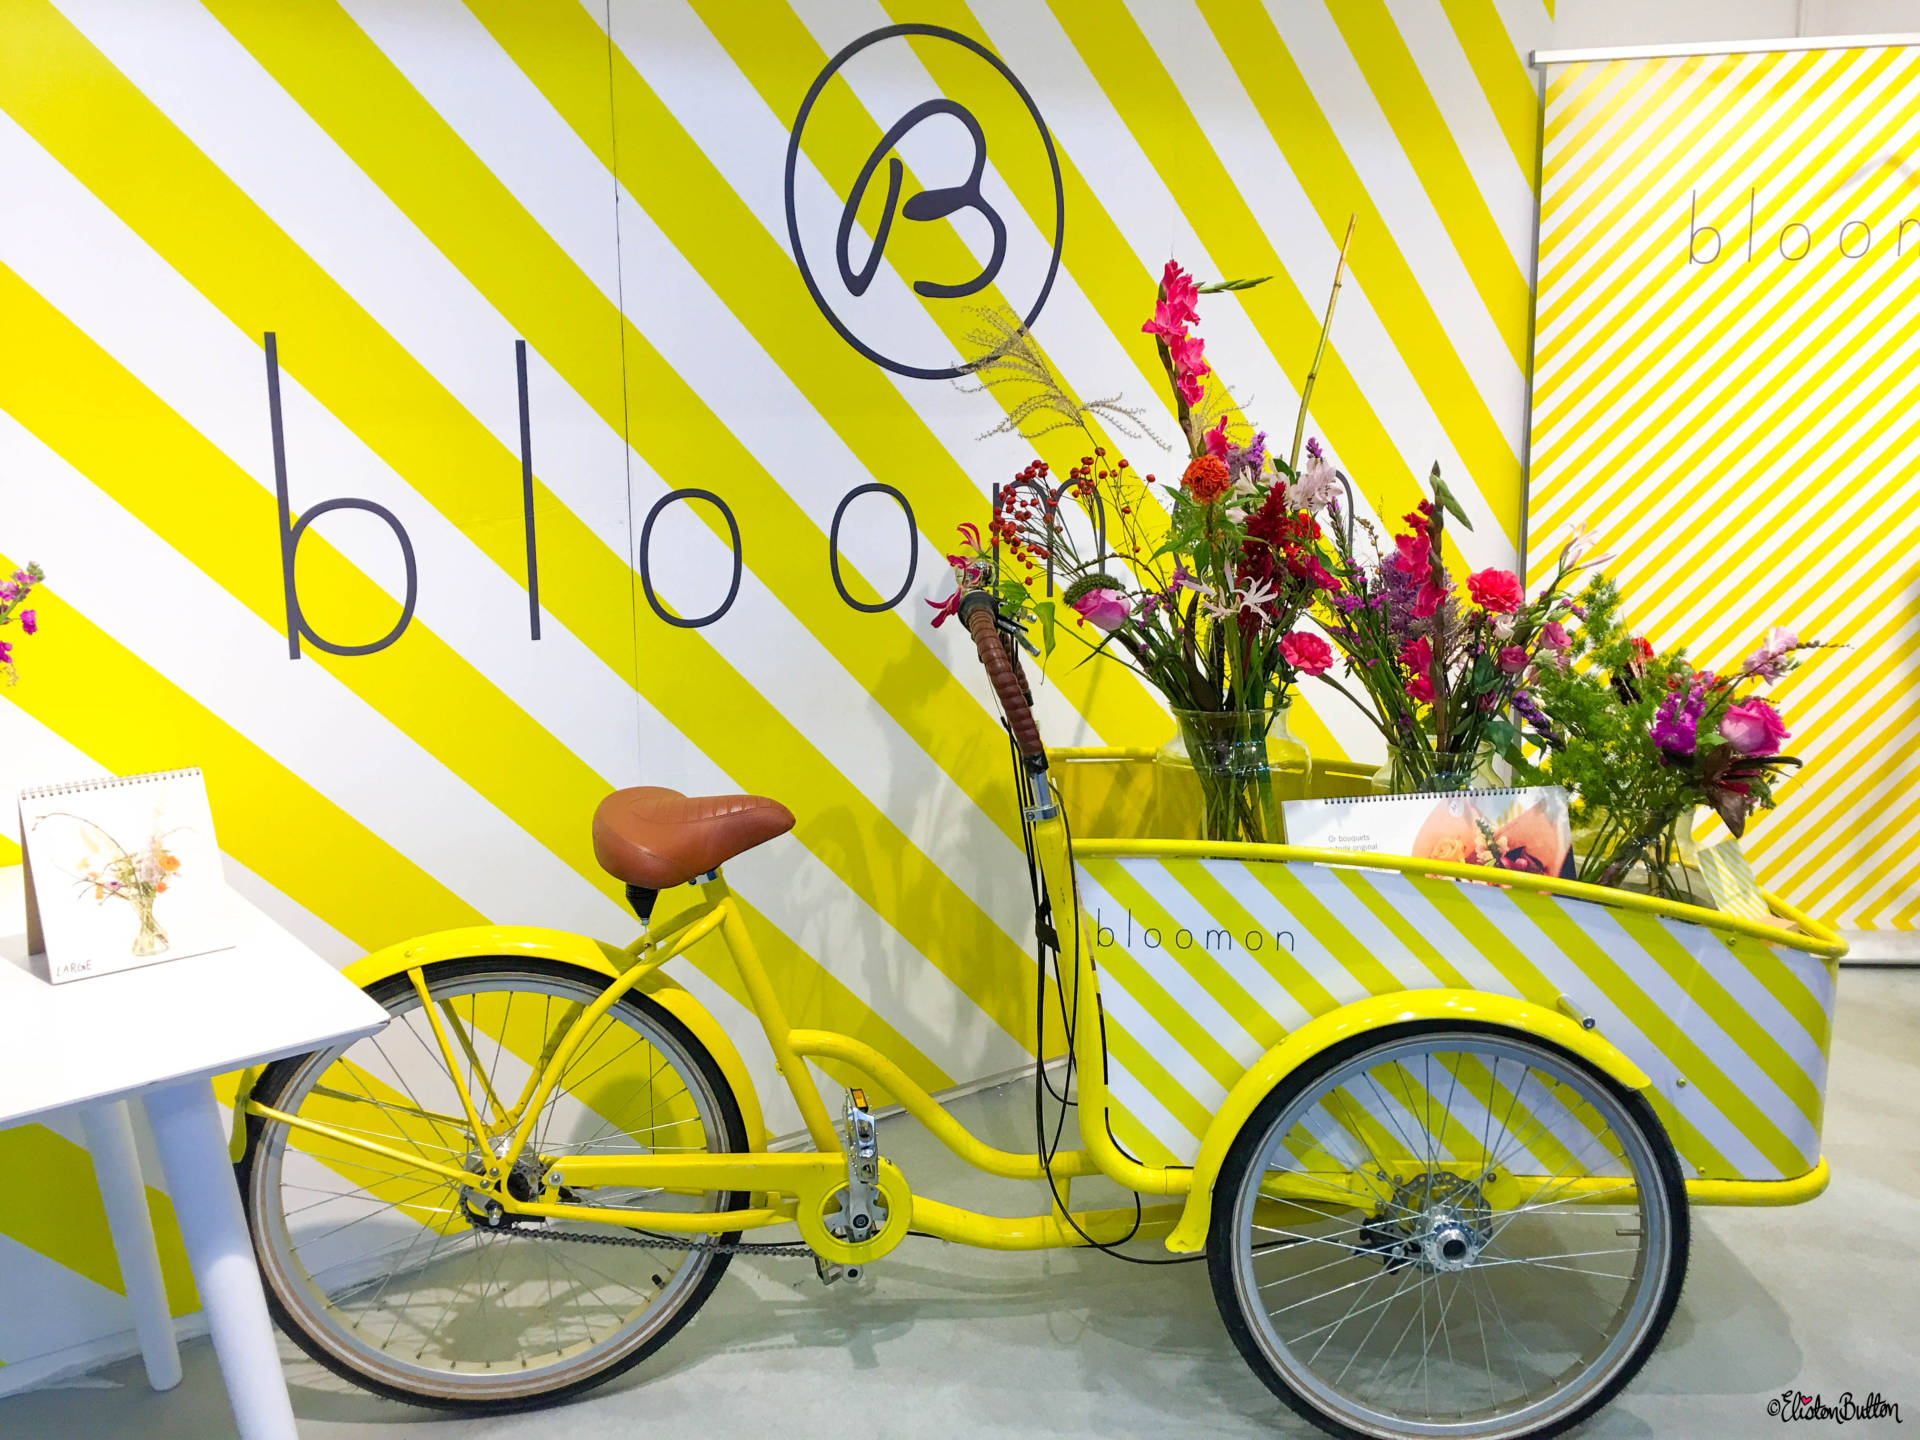 Bloom Yellow Bicycle and Flowers at Grand Designs Live 2017 with Eliston Button - Grand Designs Live 2017 – Part Two at www.elistonbutton.com - Eliston Button - That Crafty Kid – Art, Design, Craft & Adventure.